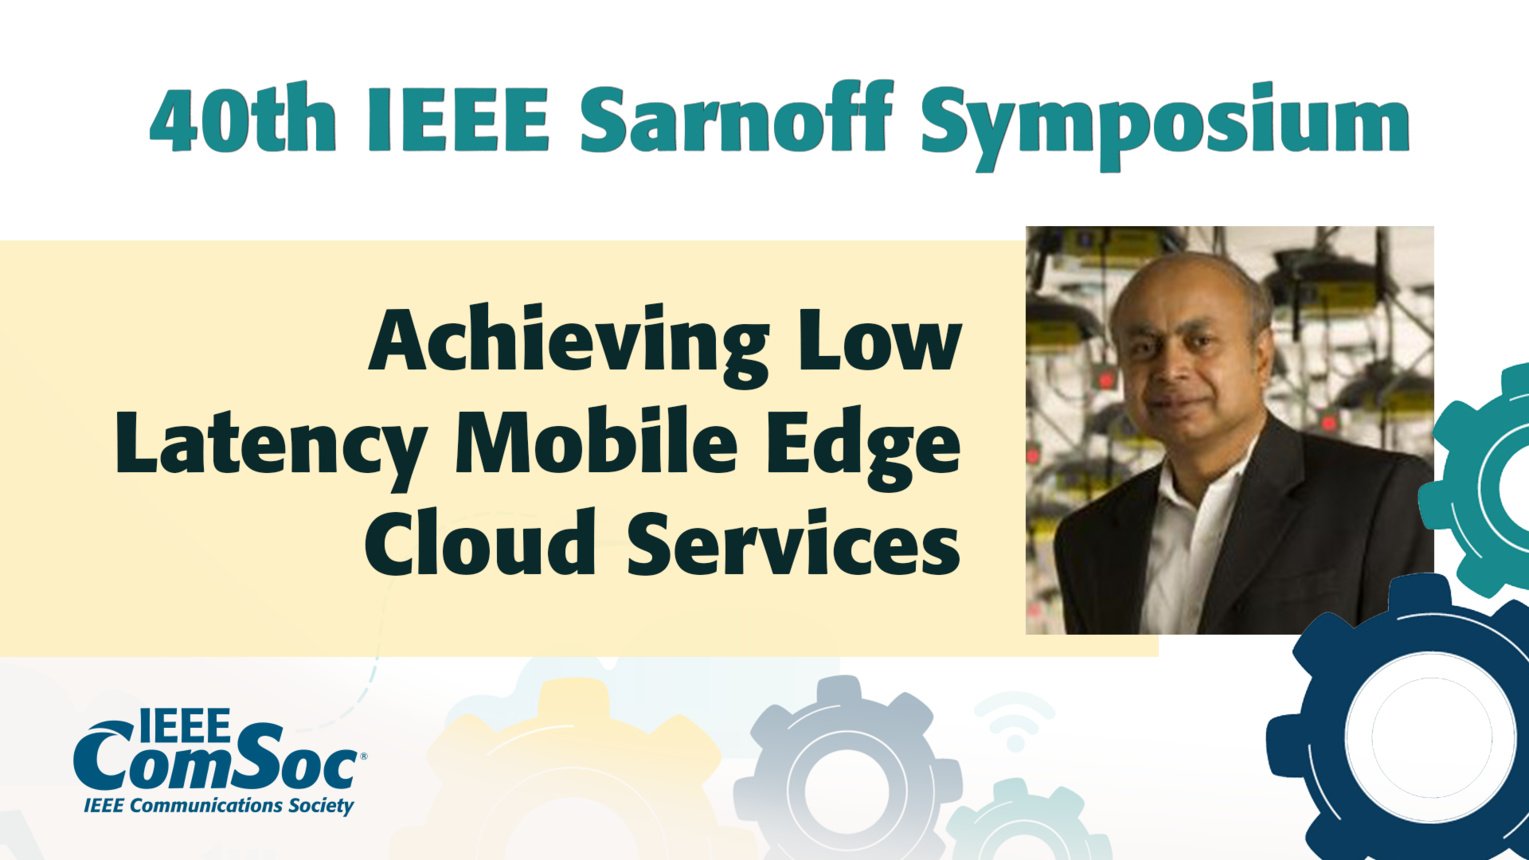 Achieving Low Latency Mobile Edge Cloud Services - Dipankar Raychaudhuri - IEEE Sarnoff Symposium, 2019